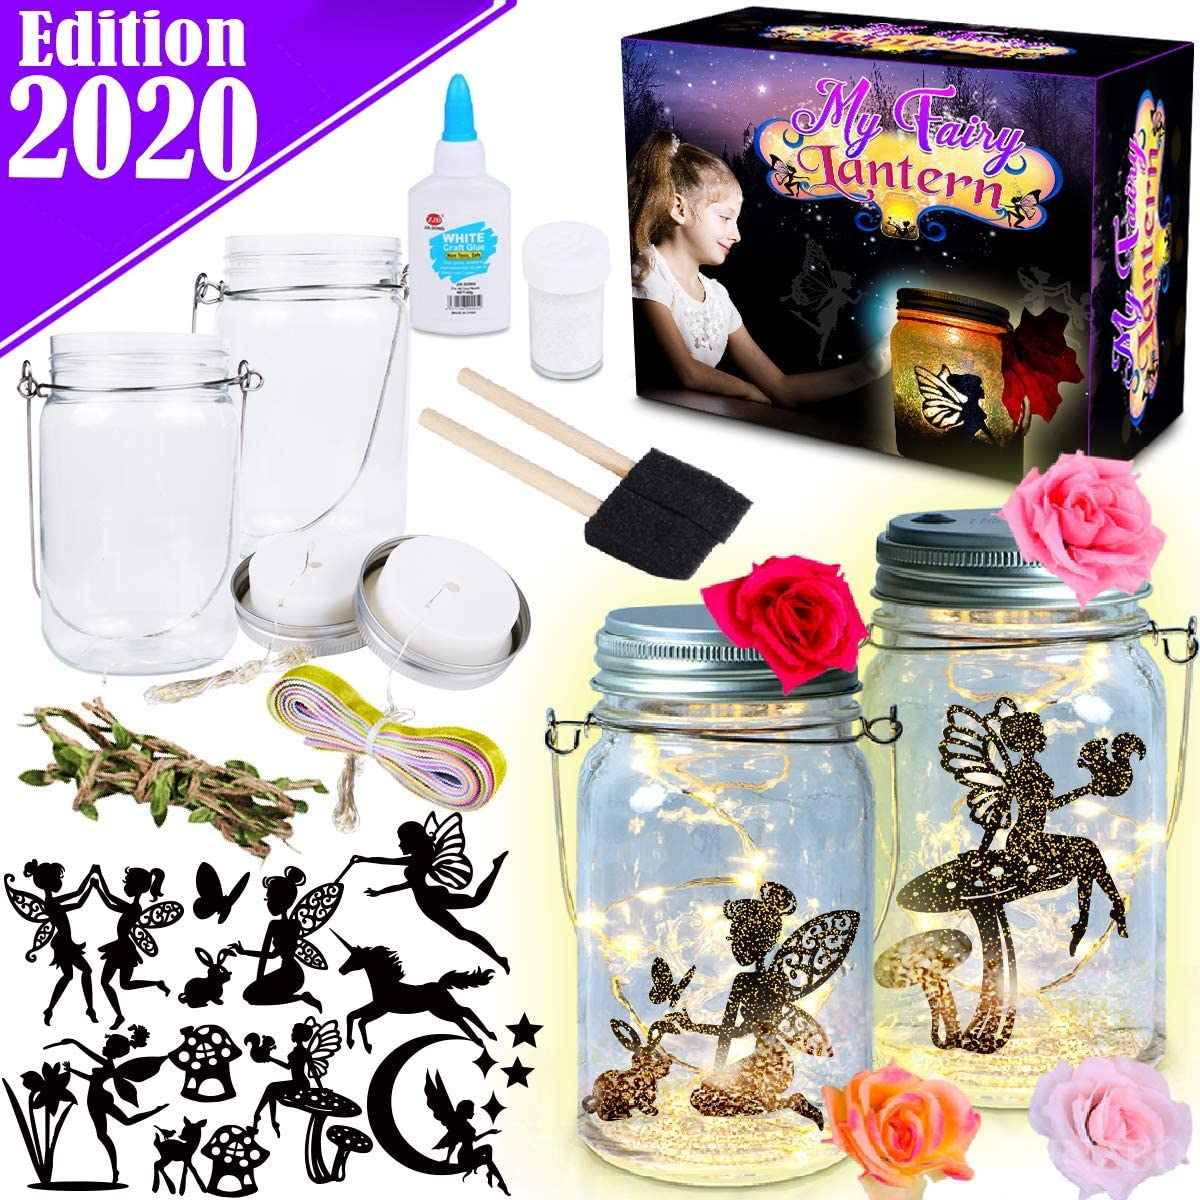 FunzBo Fairy Lantern Craft Kit for Kids - Arts and Crafts Jar Nightlight for Girls Age 6 7 8 9 10 Year Old Christmas Halloween Decorations Supplies Gift - Indoor Outdoor Garden DIY Deco Art Project